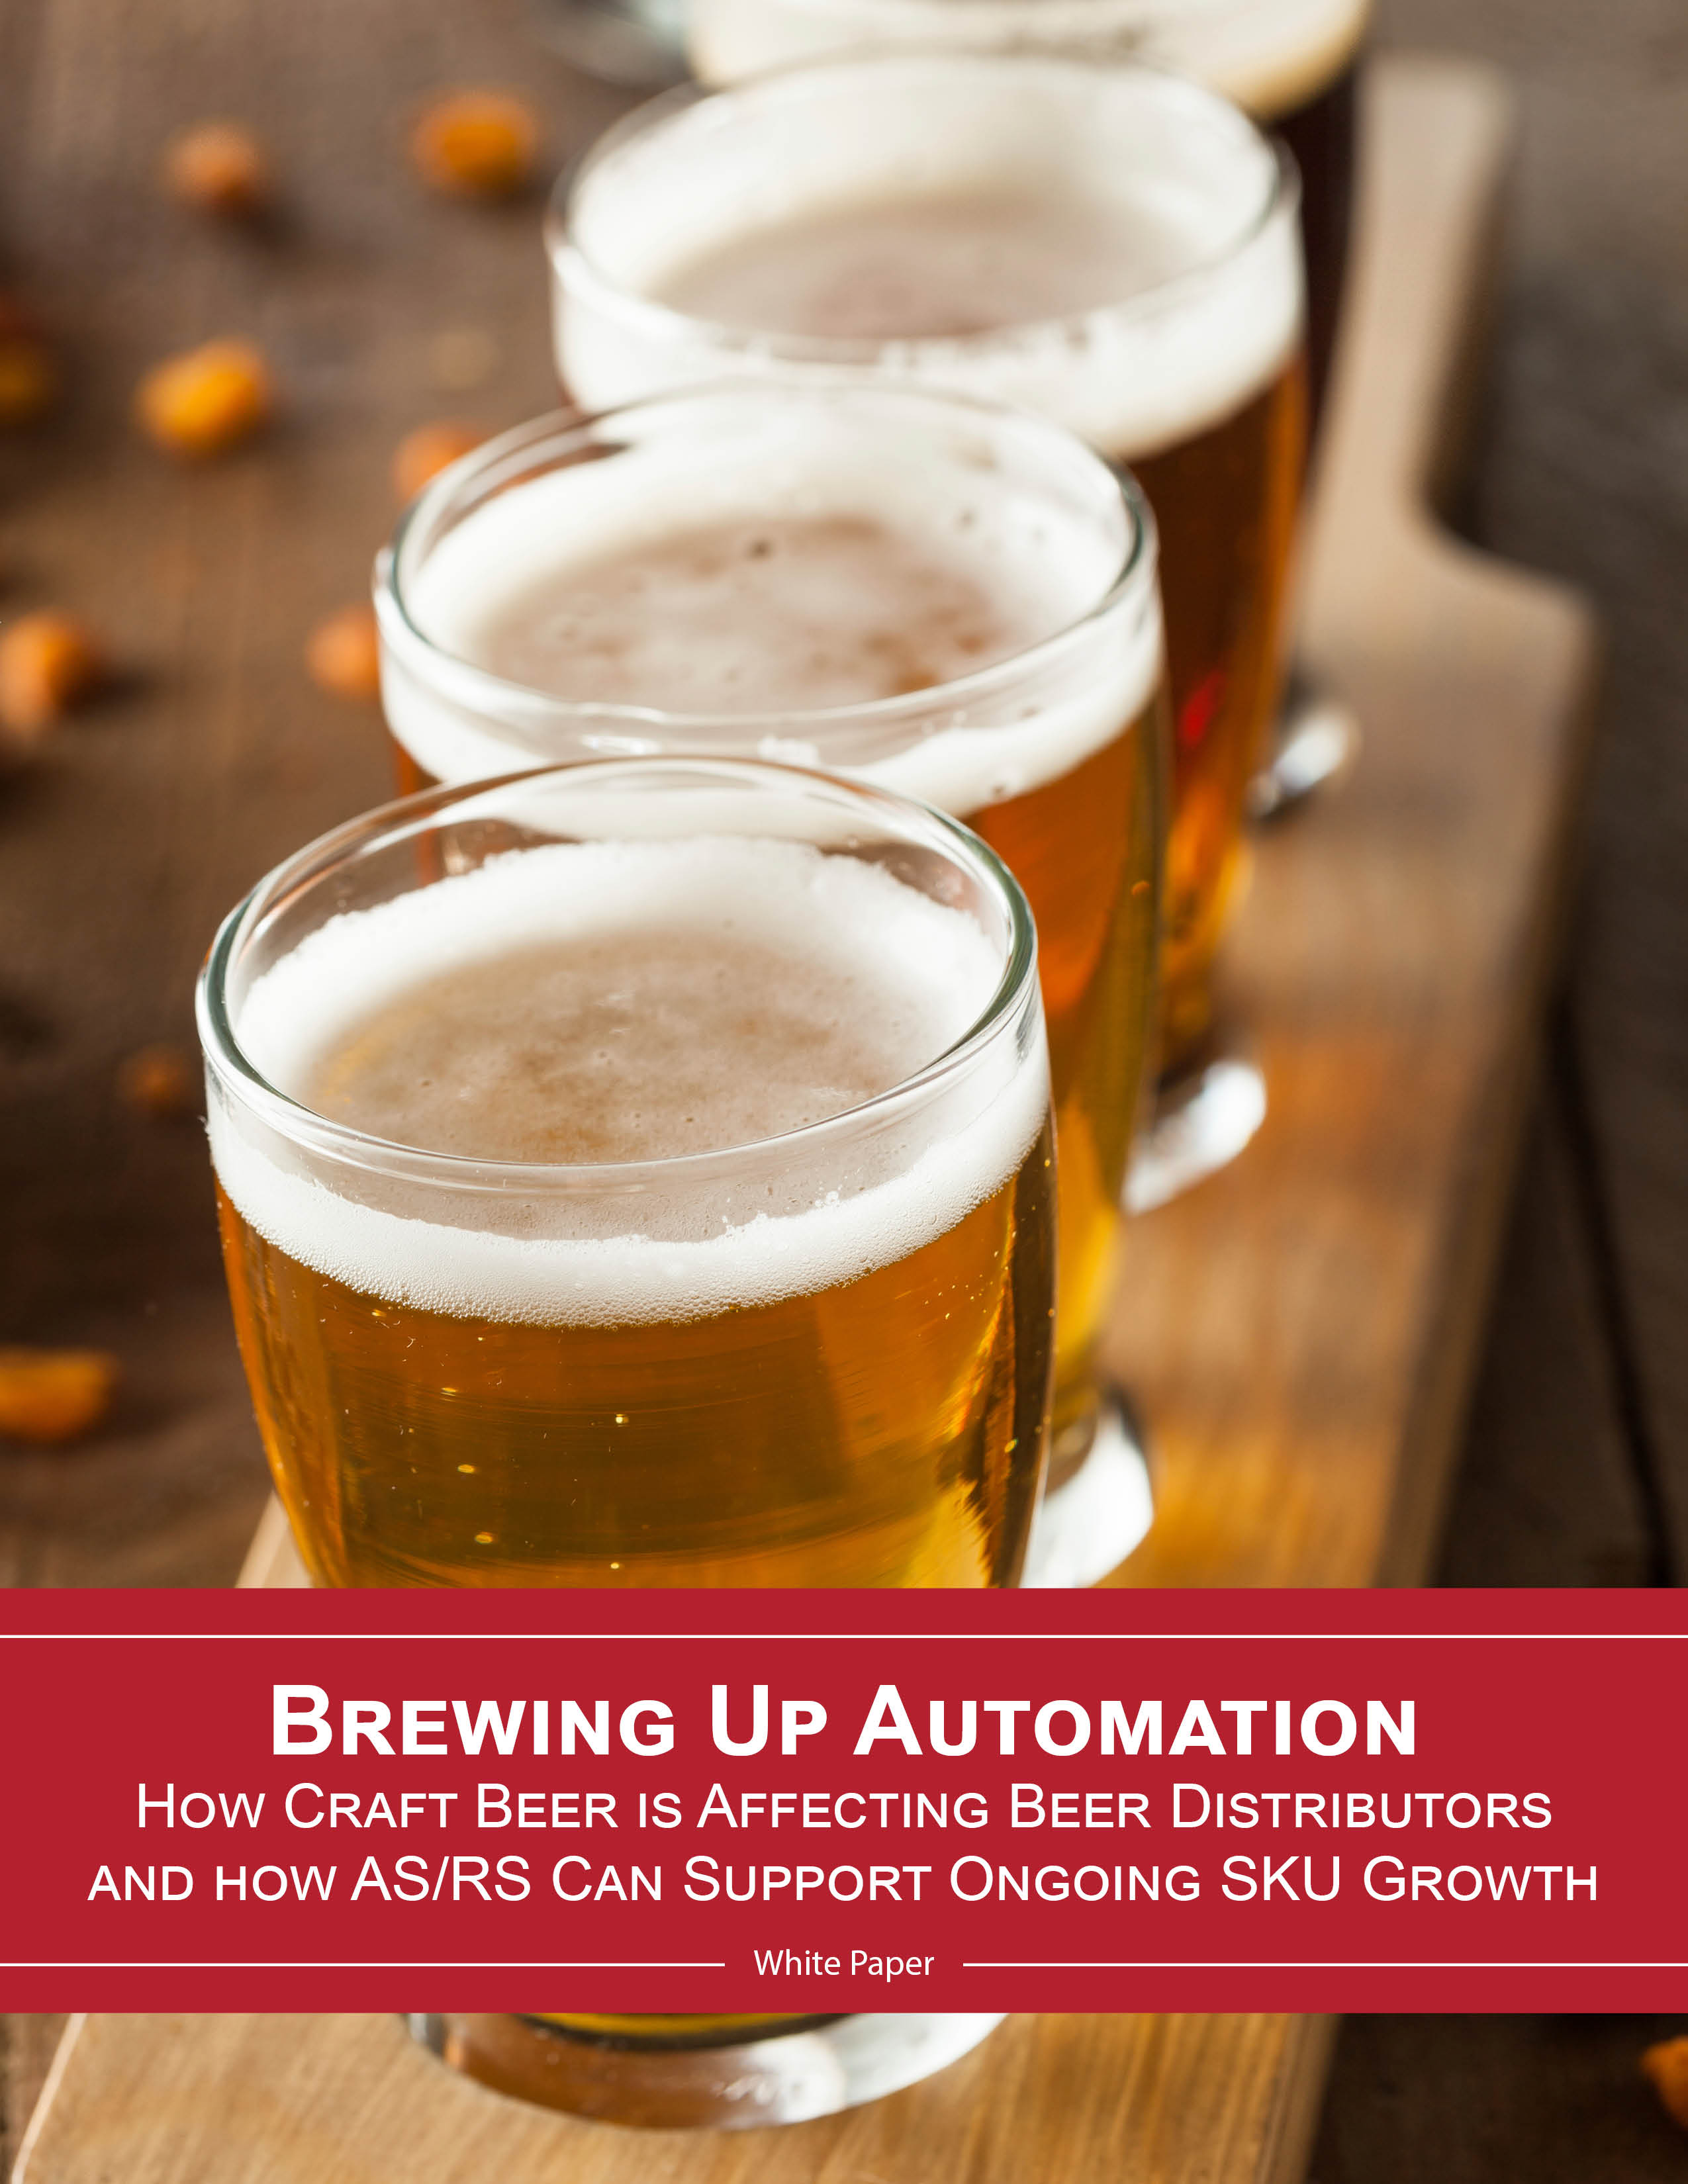 How craft beer is affecting beer distributors and how AS/RS can support ongoing SKU growth